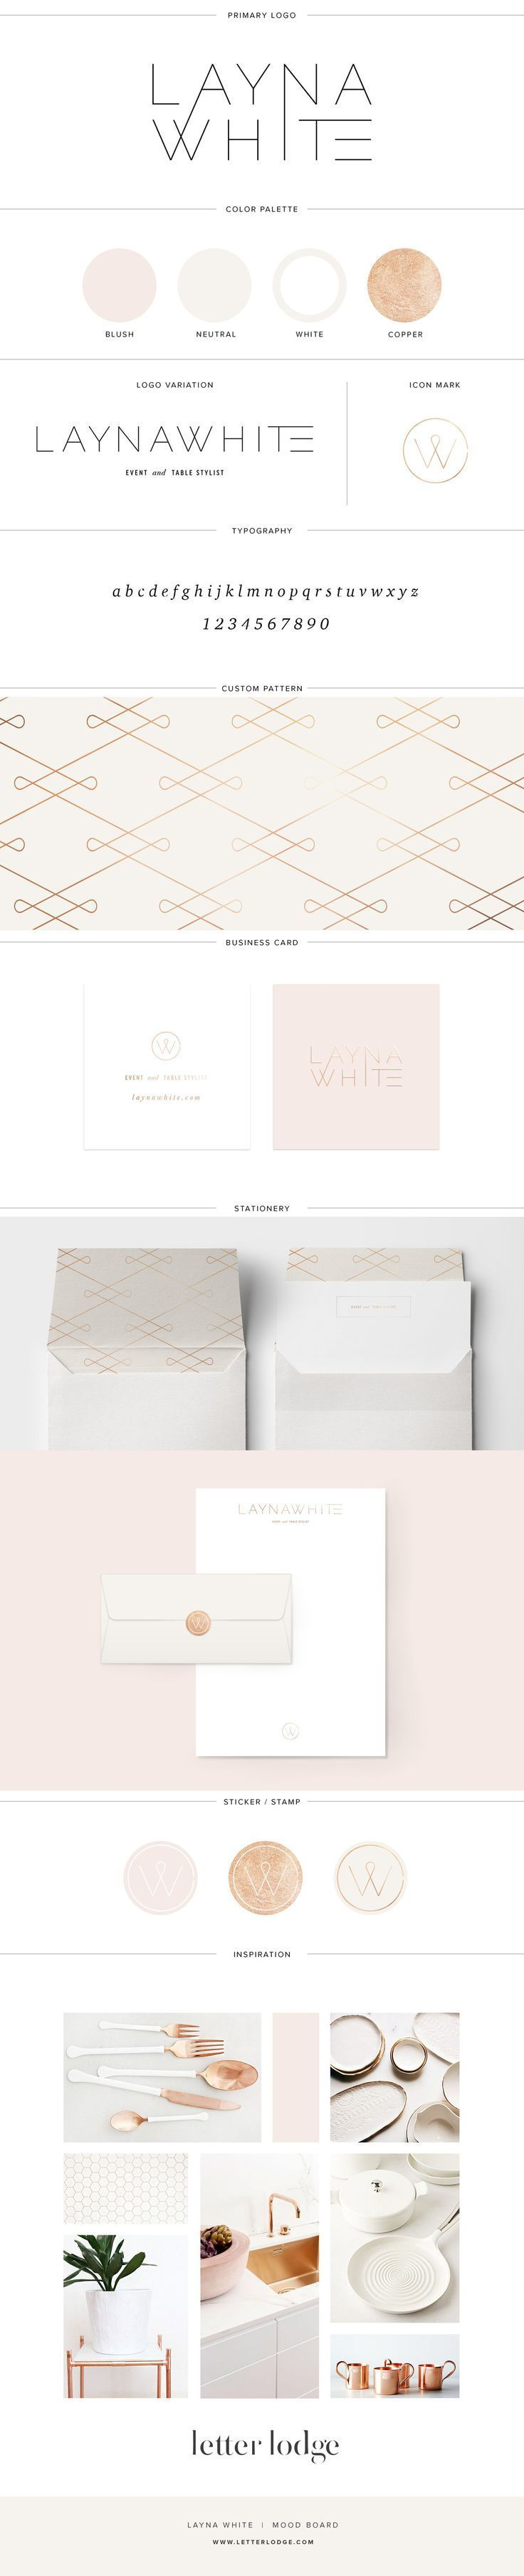 Layna White — Letter Lodge | Layna White — Letter Lodge | Brand Board | Modern Logo Design Brand Board | Event Stylist Tablescape Gold Foil Copper Simple Modern Minimal Lifestyle Blogger Photographer